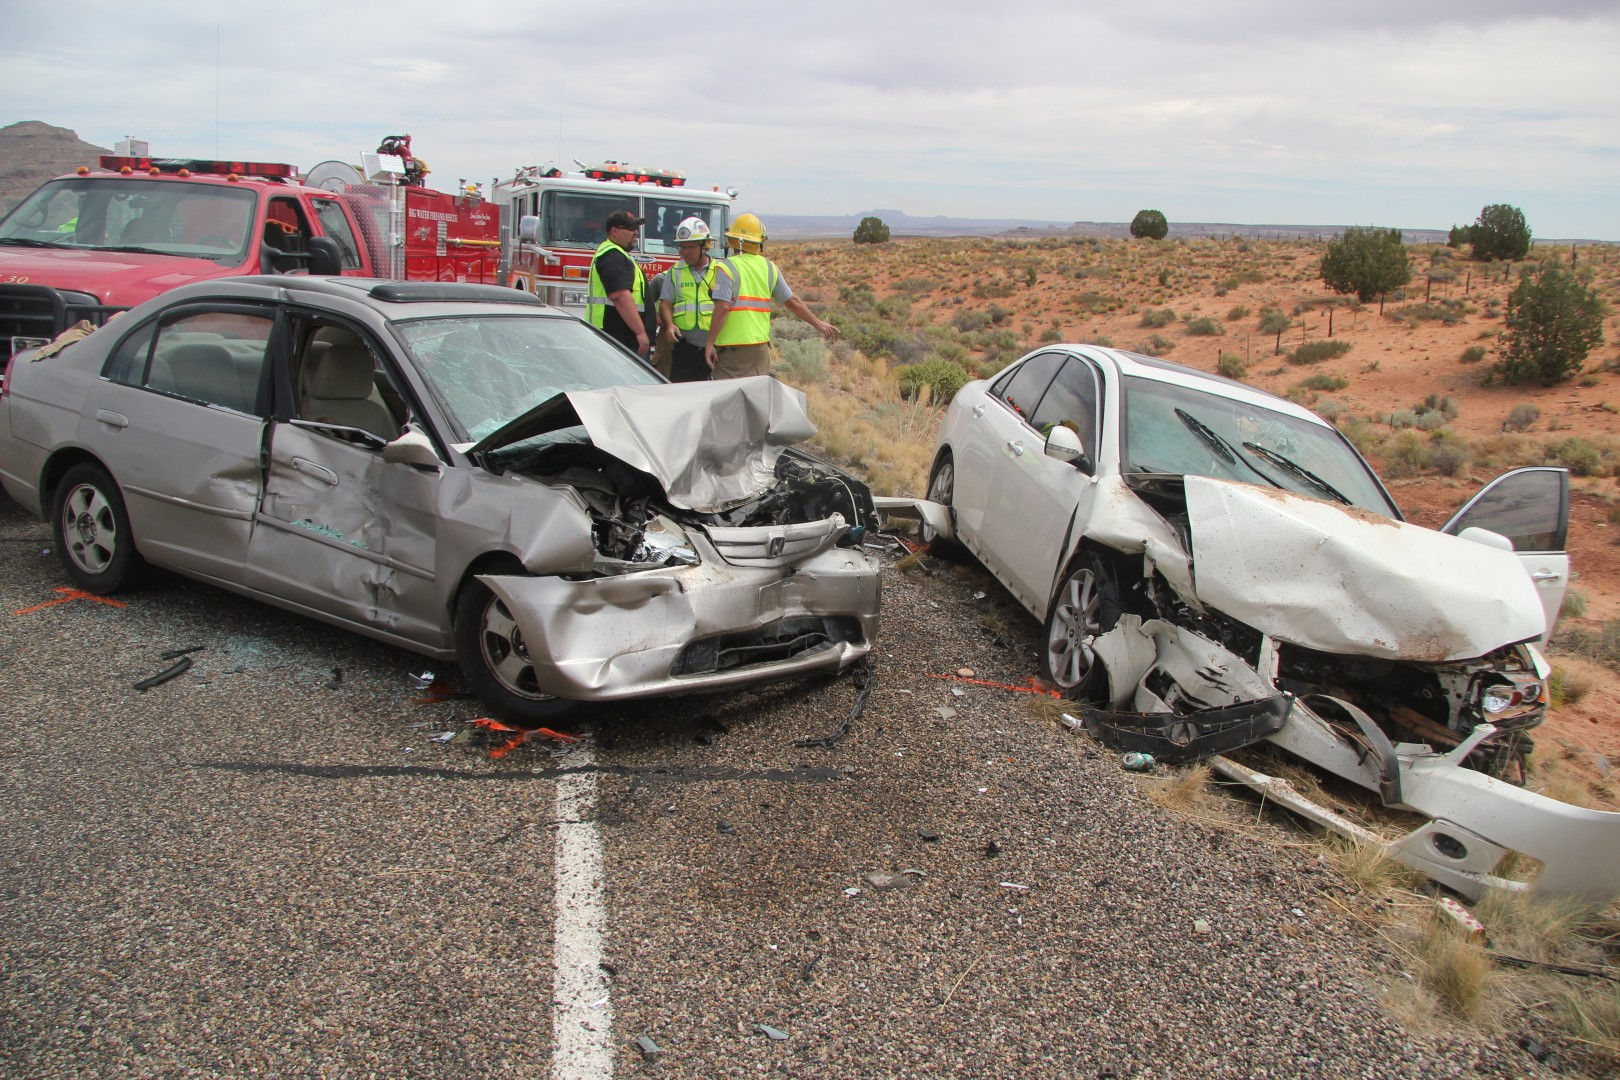 The aftermath of a head-on collision on state Route 89 in Kane County, Utah, Aug. 30, 2014 | Photo courtesy of Utah Highway Patrol, St. George News